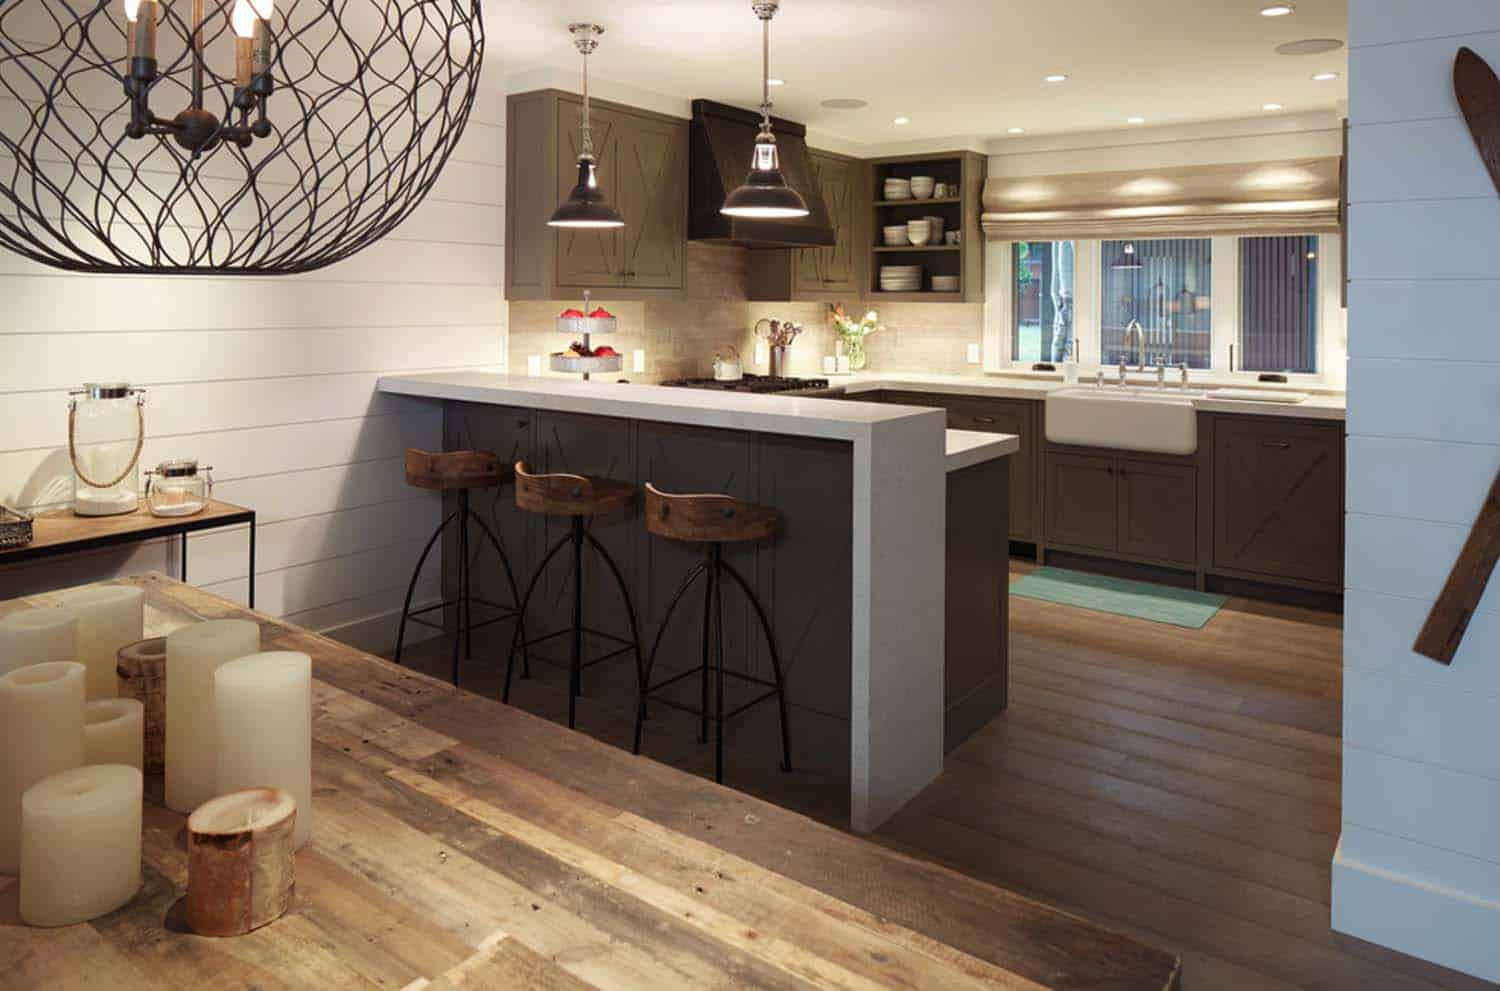 industrial-style-home-artistic-designs-for-living-04-1-kindesign